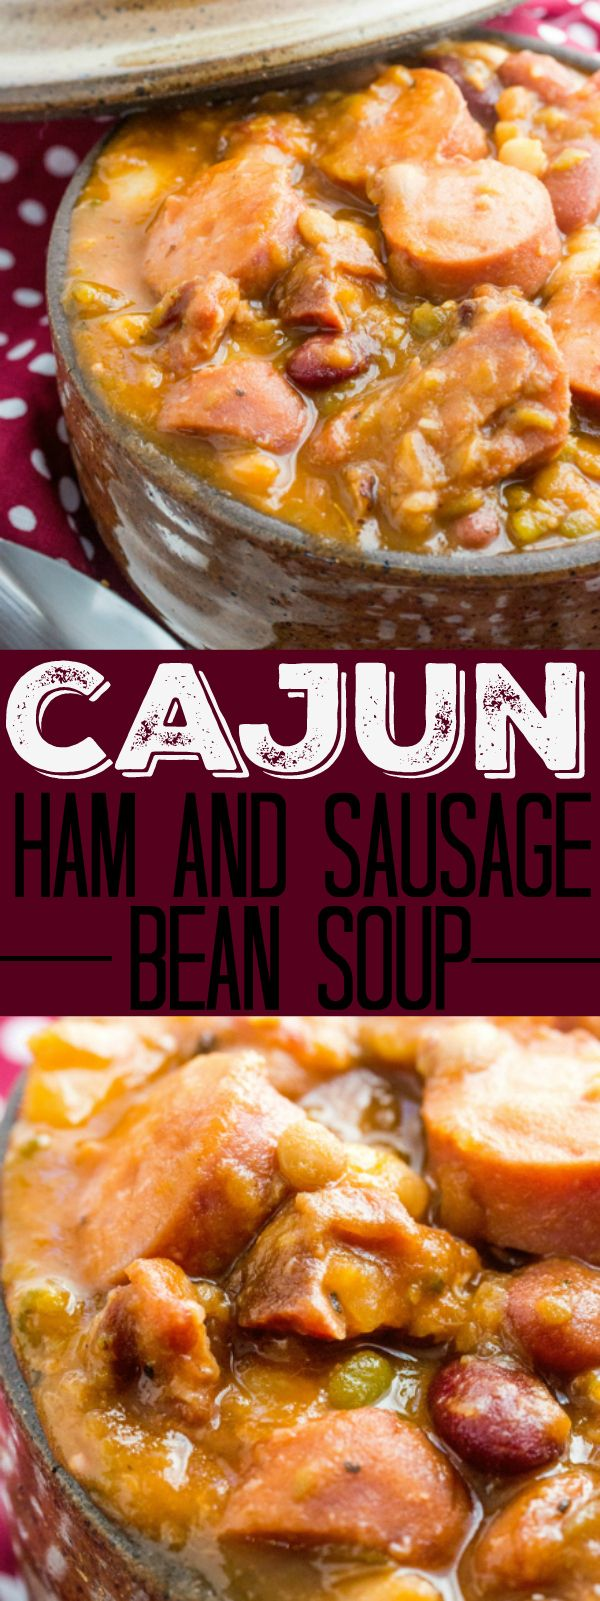 Warm up with this Cajun Ham and Sausage Bean Soup! Spicy, meaty and delicious this is one soup that will fill you up just on looks alone! I love soup! And it doesn't necessarily have to be just around the winter time either. I'm a soup and chili gal all[Read m